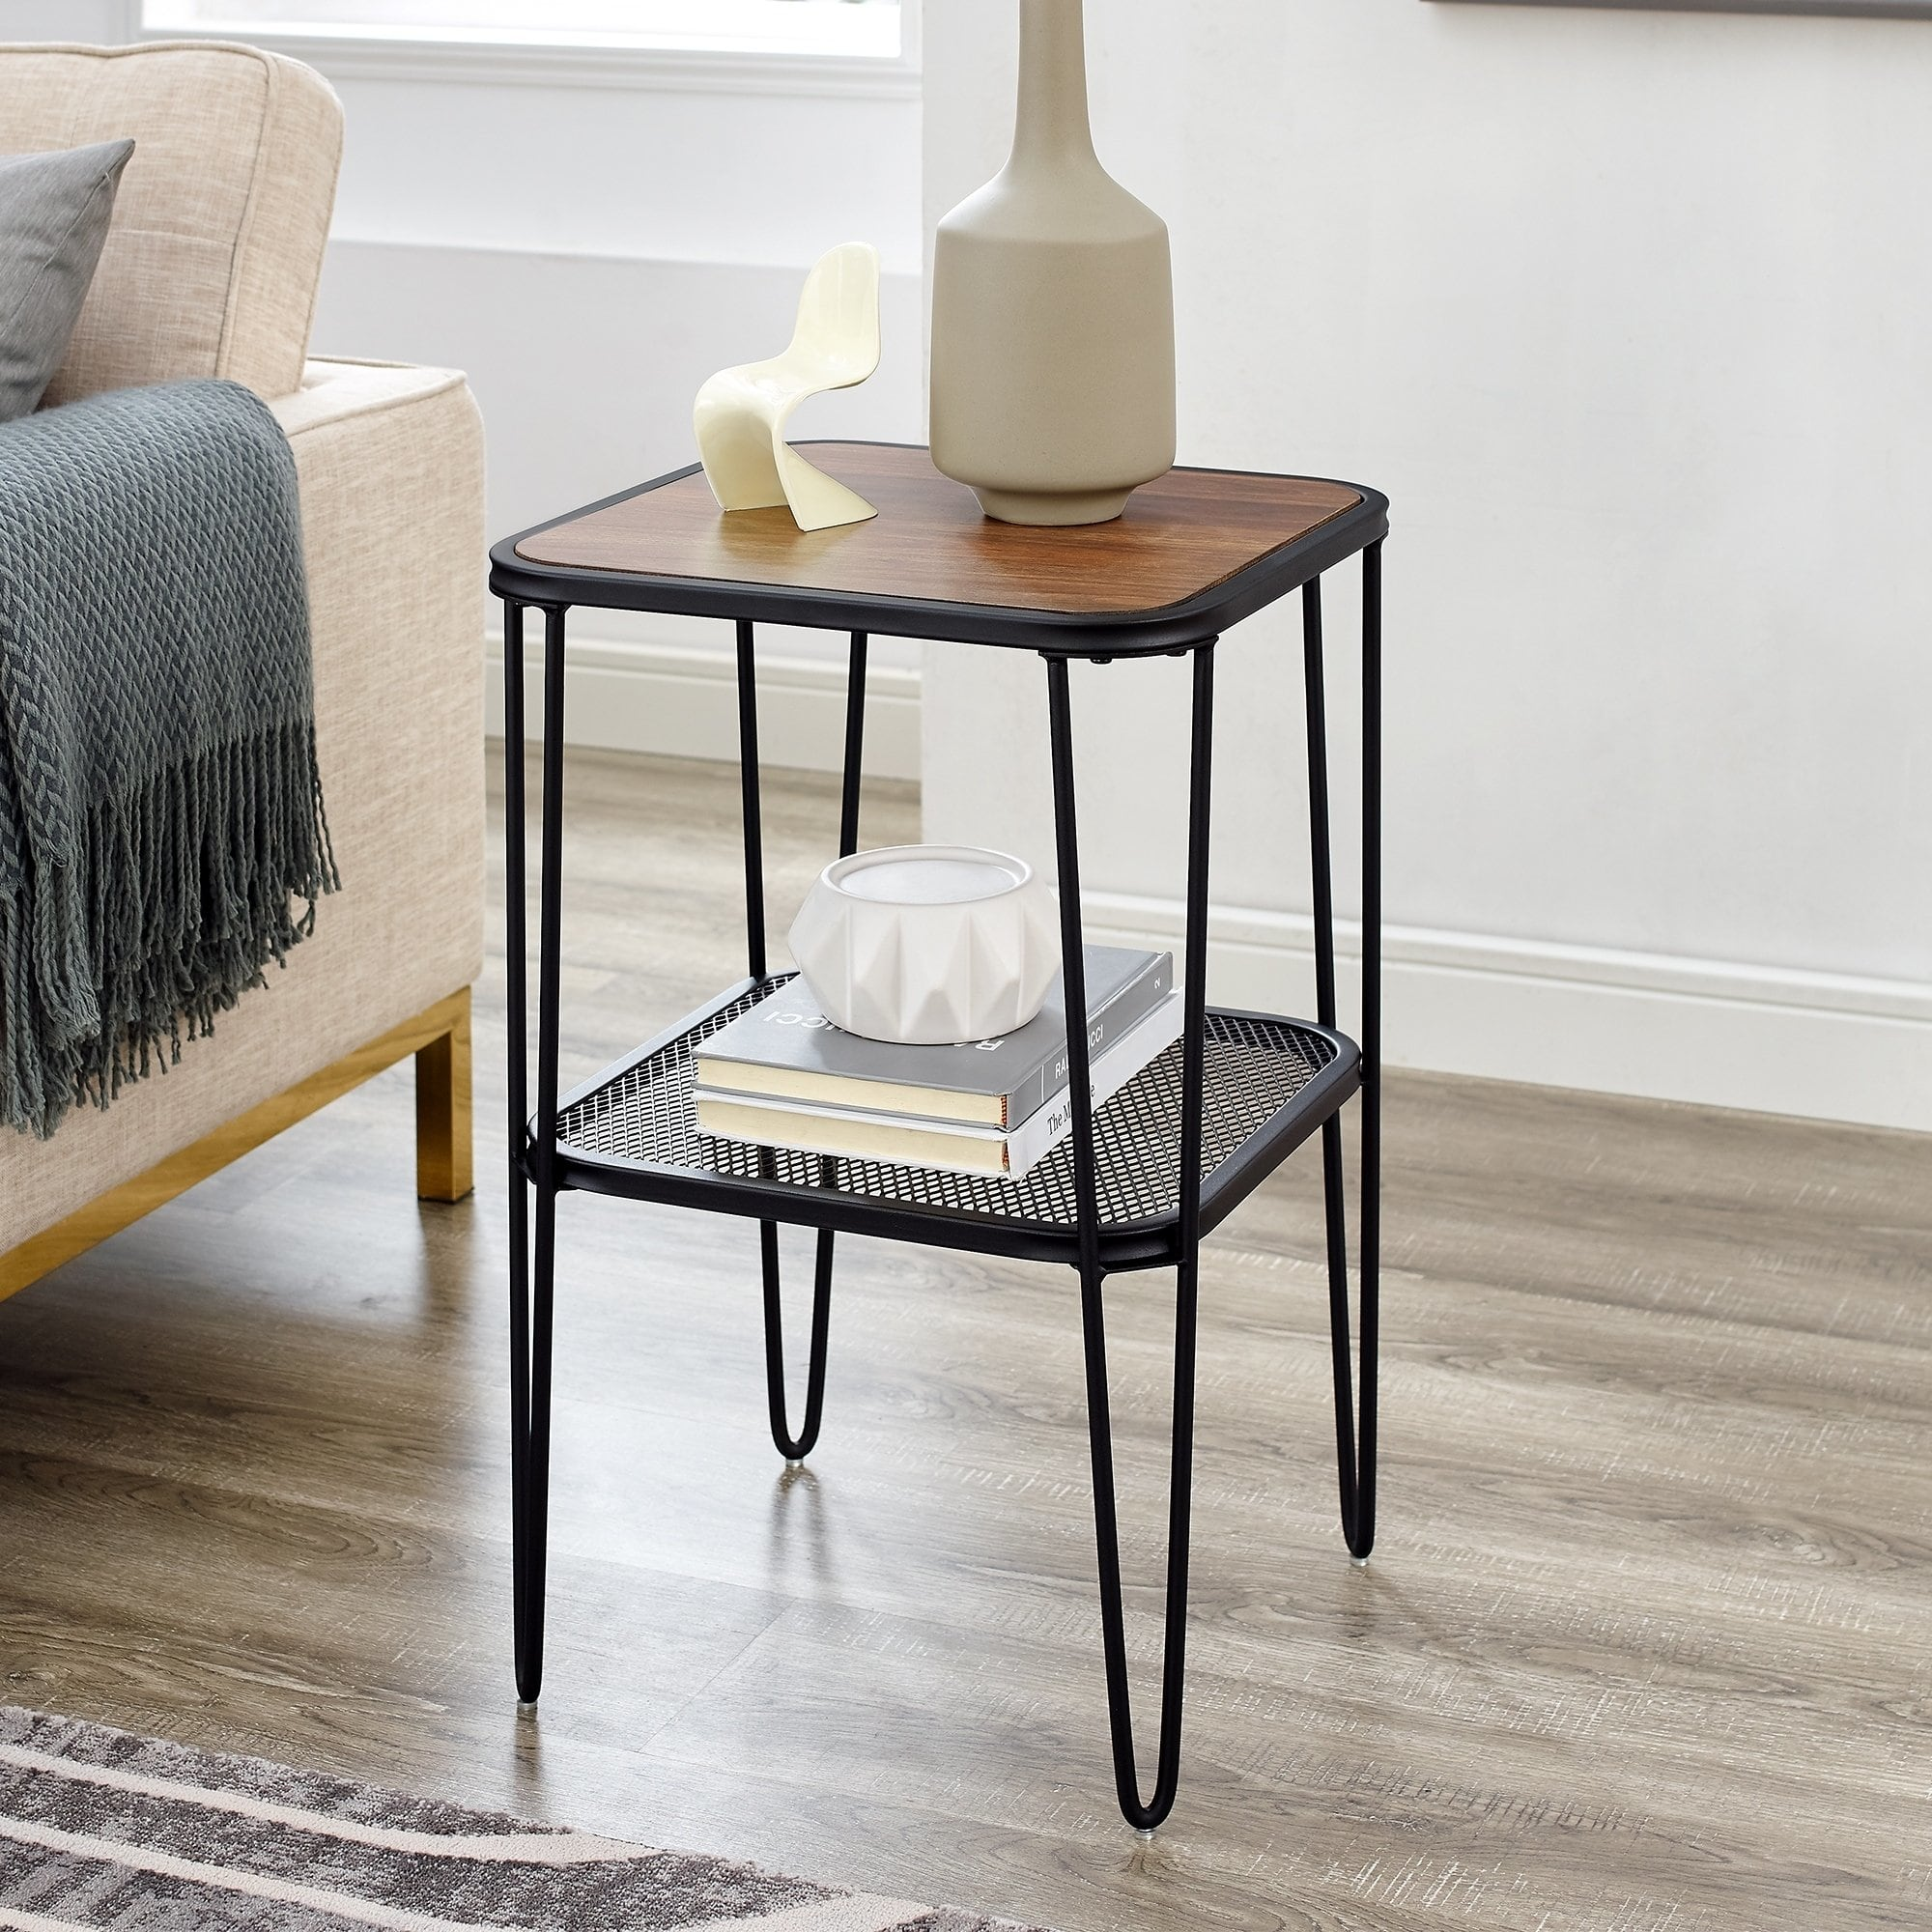 hairpin side table free shipping today room essentials accent marble brass large dining and chairs west elm mallard lamp pottery barn trunk end cool round tablecloths light red